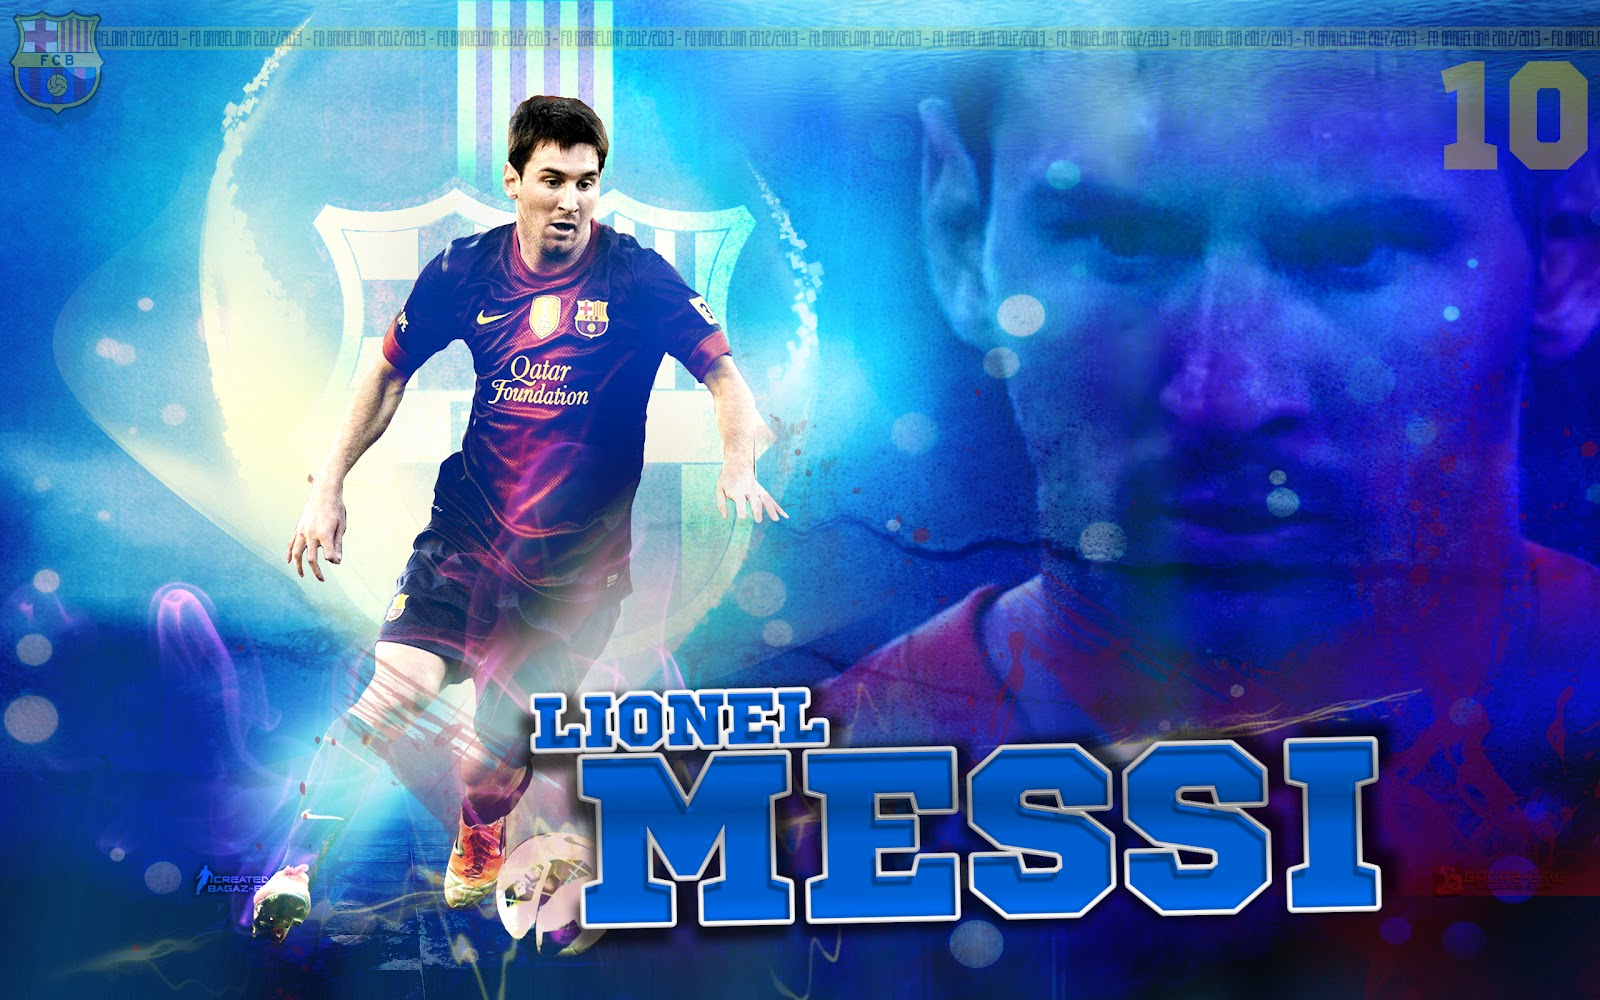 Lionel Messi HD Wallpapers 2013-2014 - All About Football